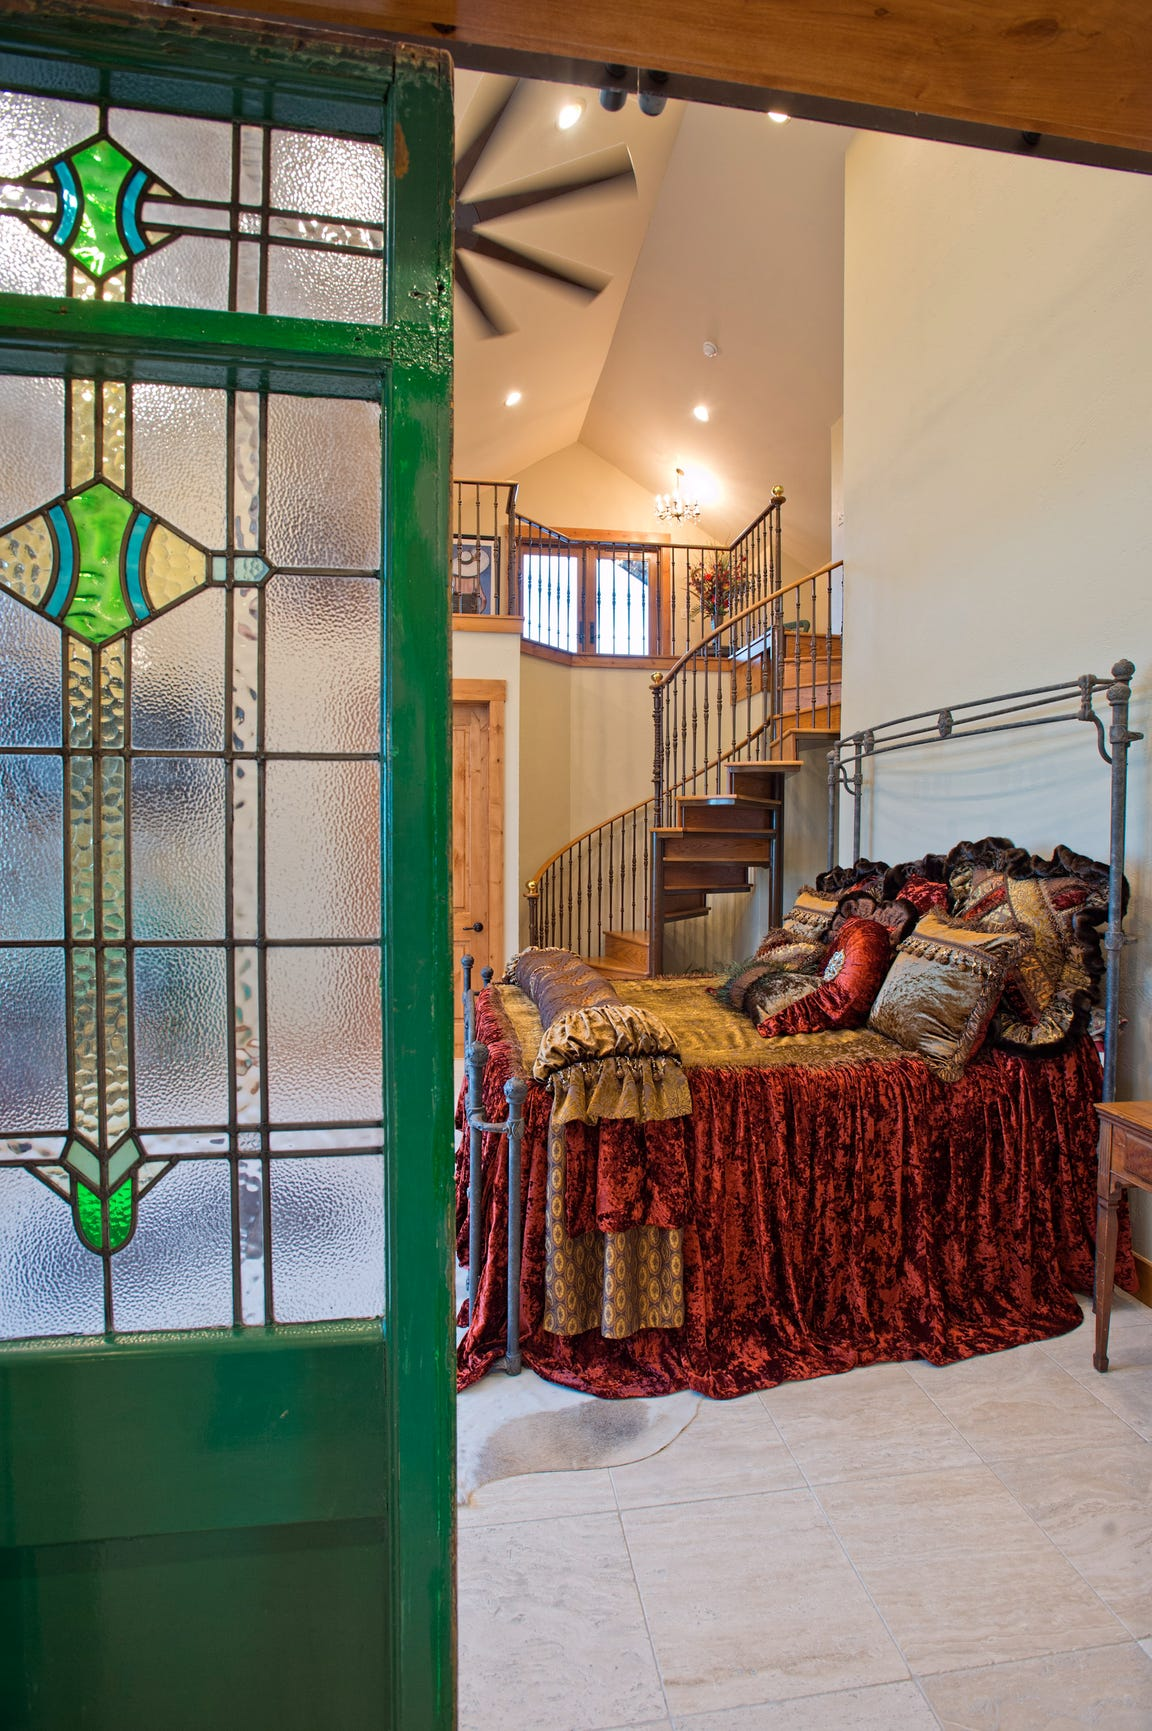 A set of antique stained glass doors lead into the master bedroom which features a unique custom designed reversing spiral staircase leading up to a loft